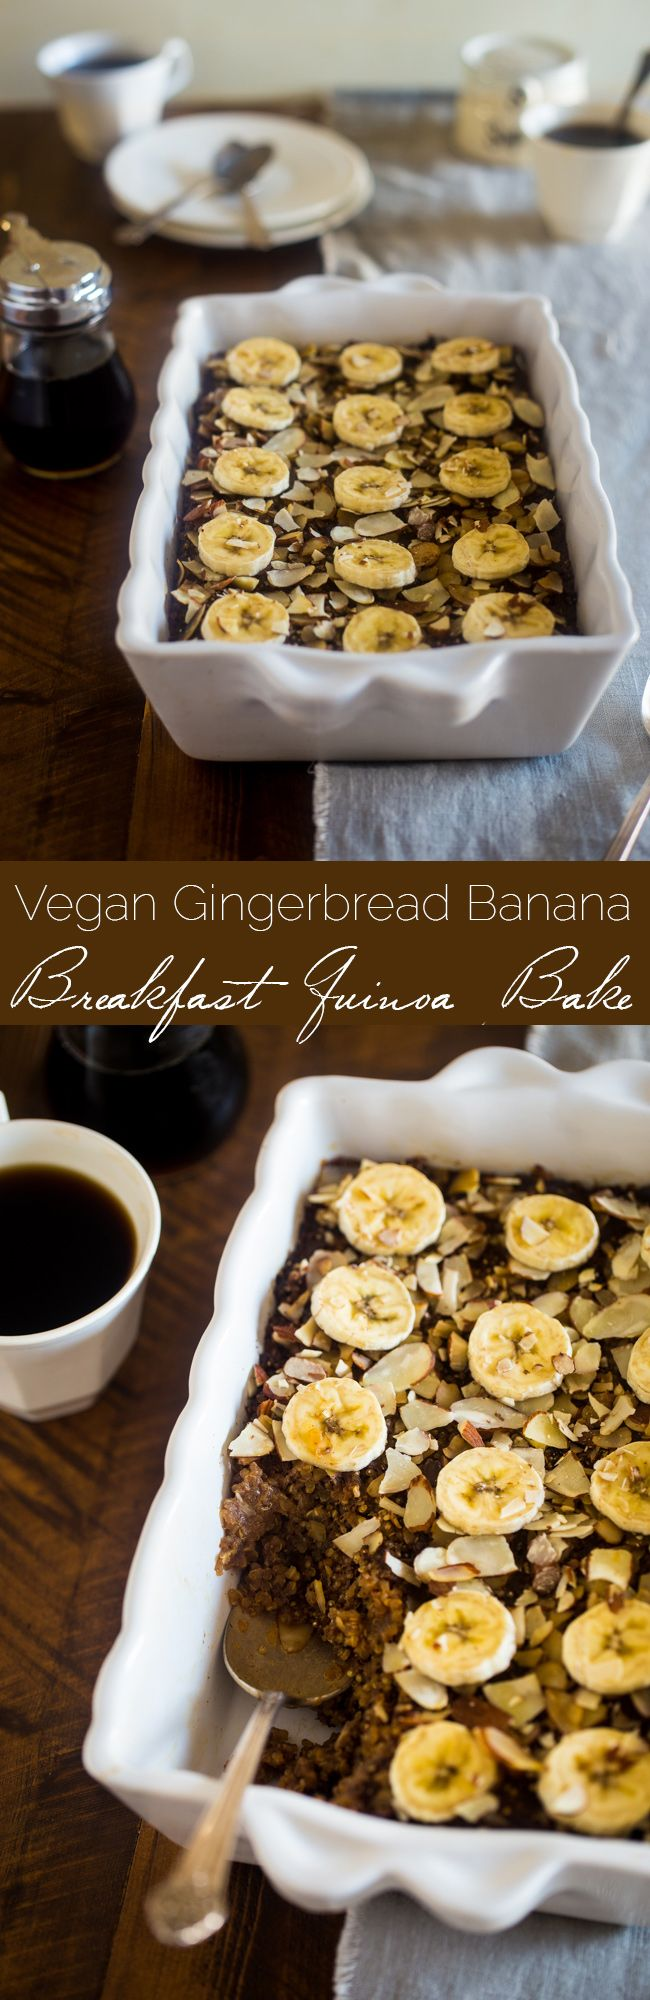 Vegan Gingerbread Banana Breakfast Quinoa Bake - Quinoa is mixed with molasses…